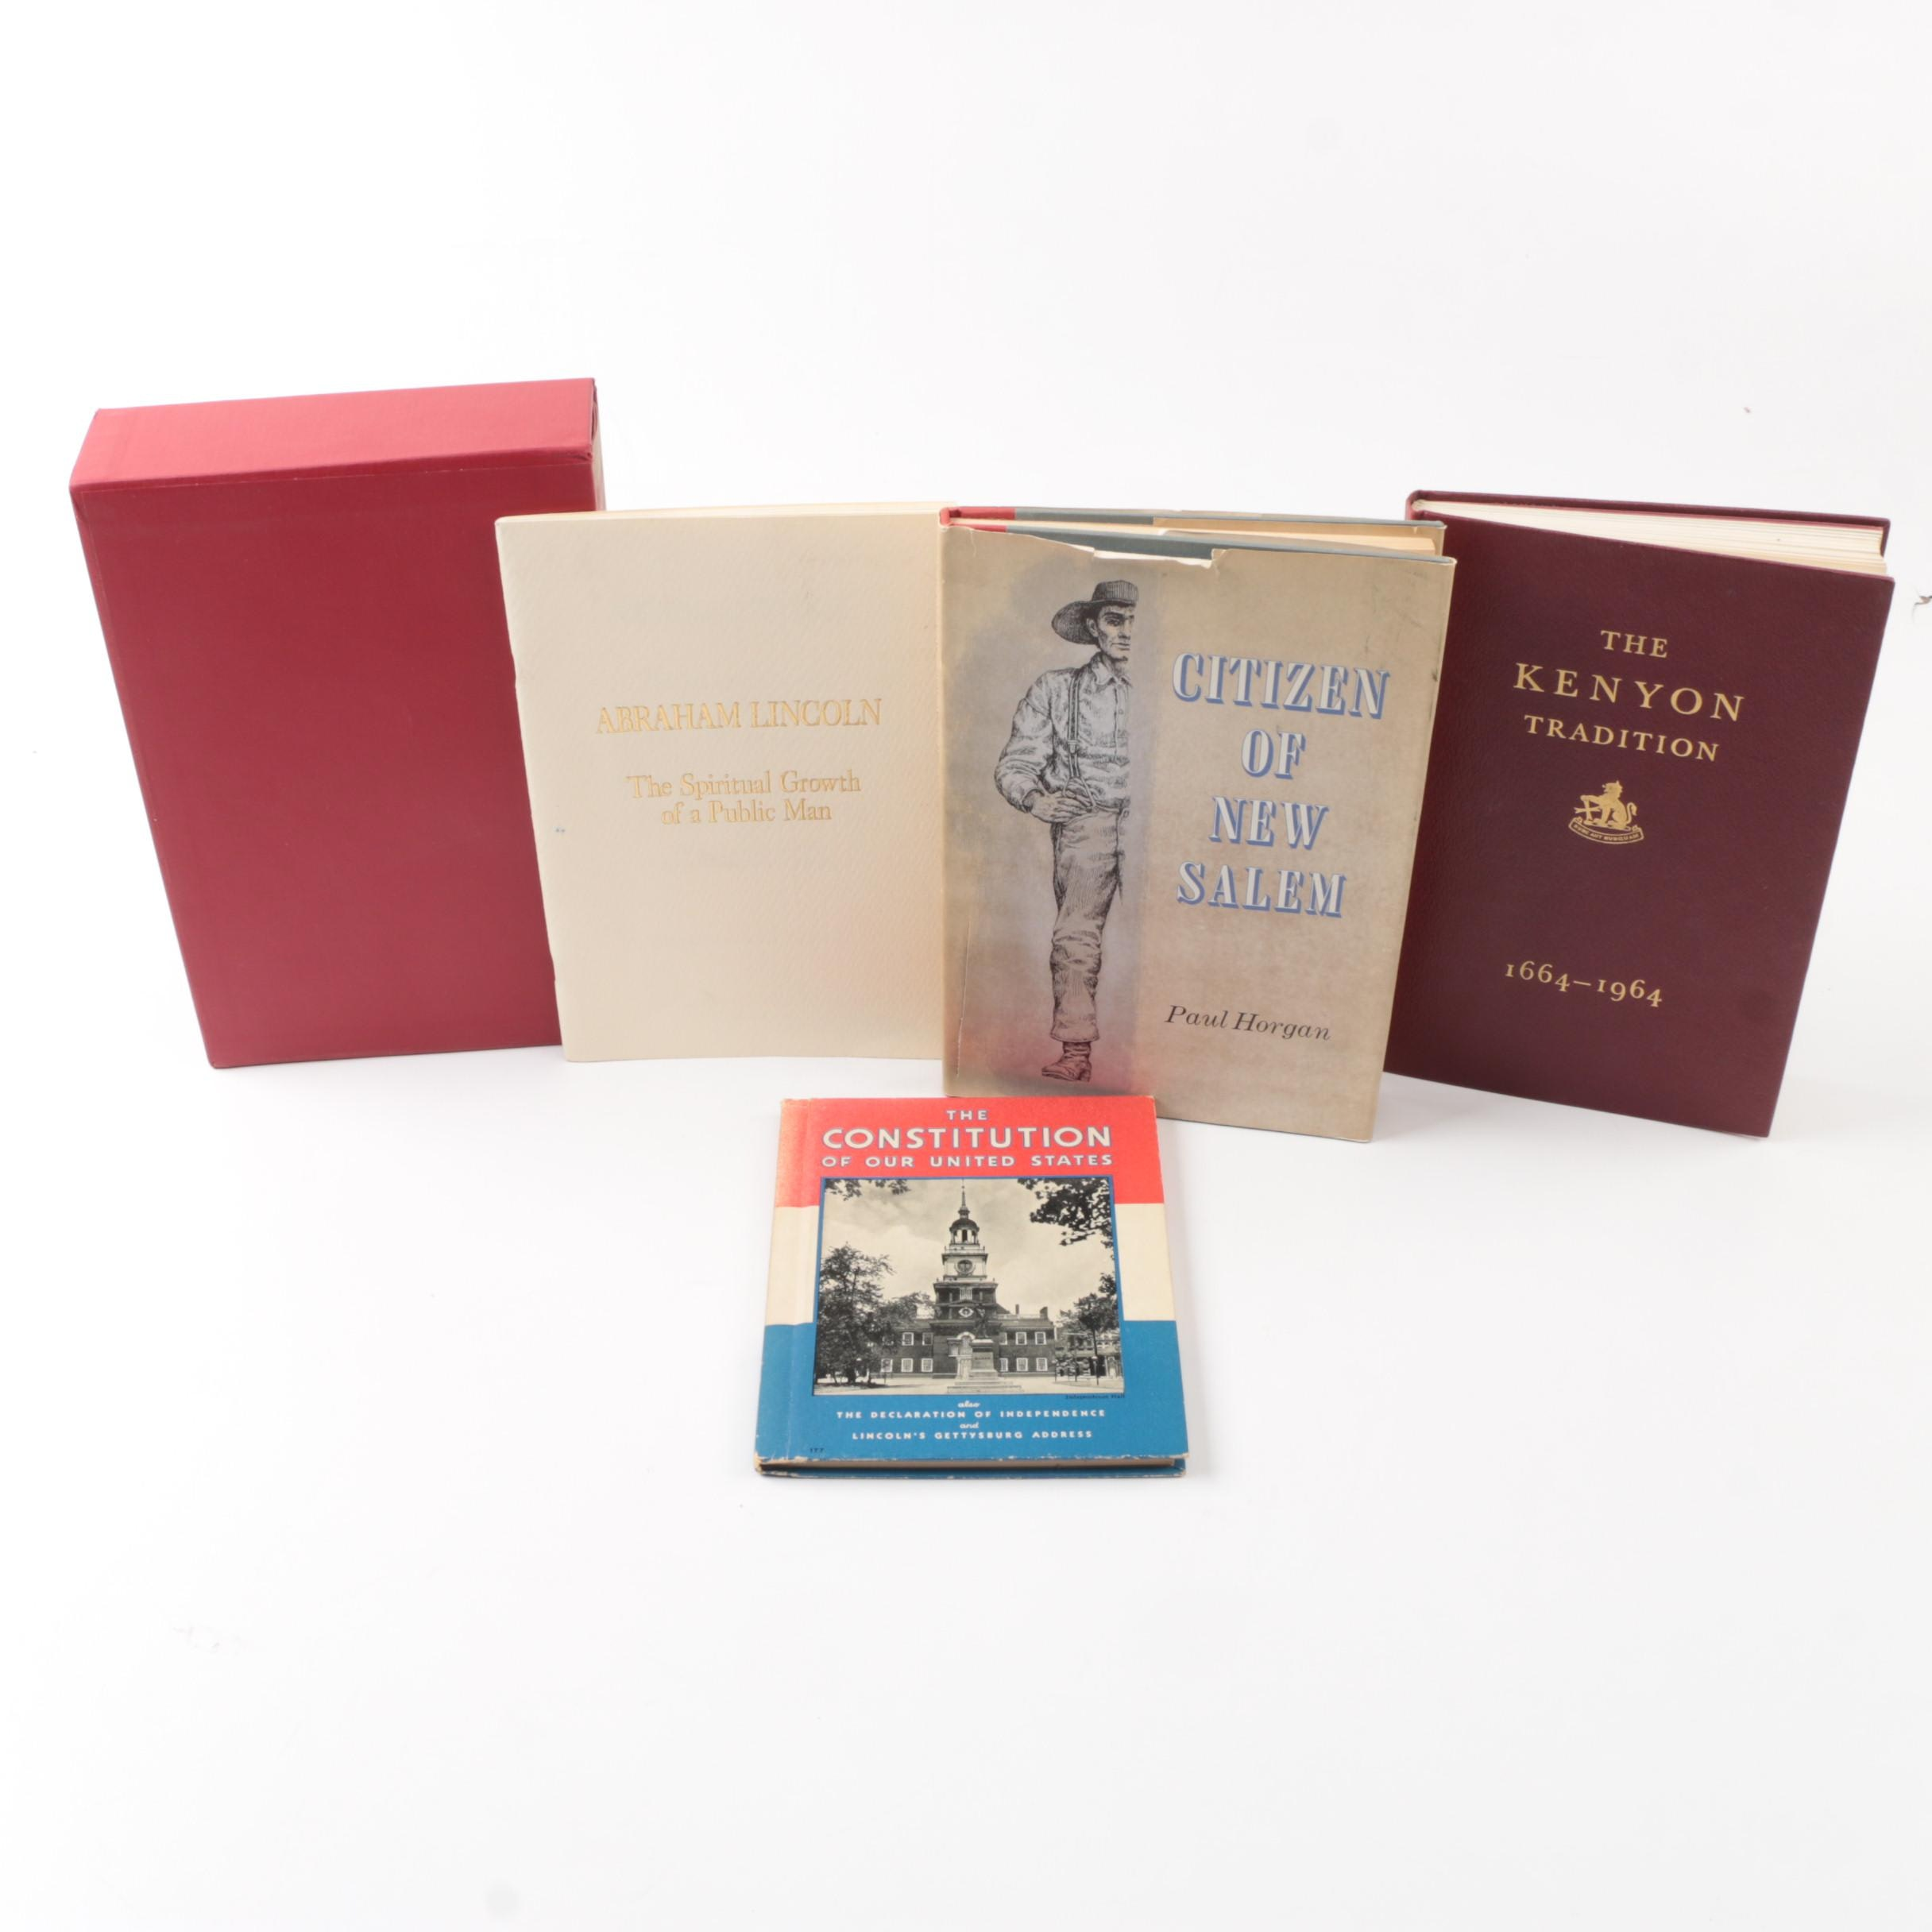 Collection of Hardcover Books on U.S. History